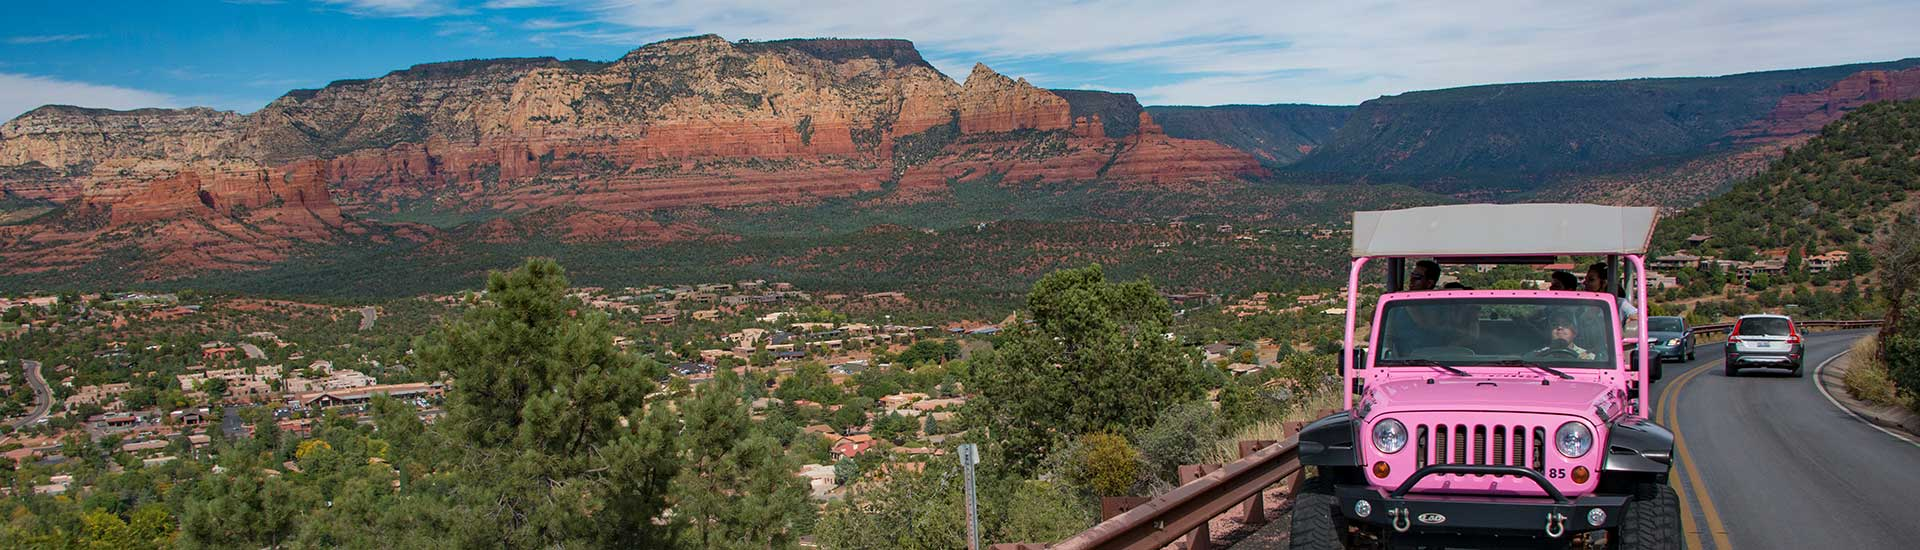 Sedona Energy Vortex, Guided Pink® Jeep® Tours | Arizona